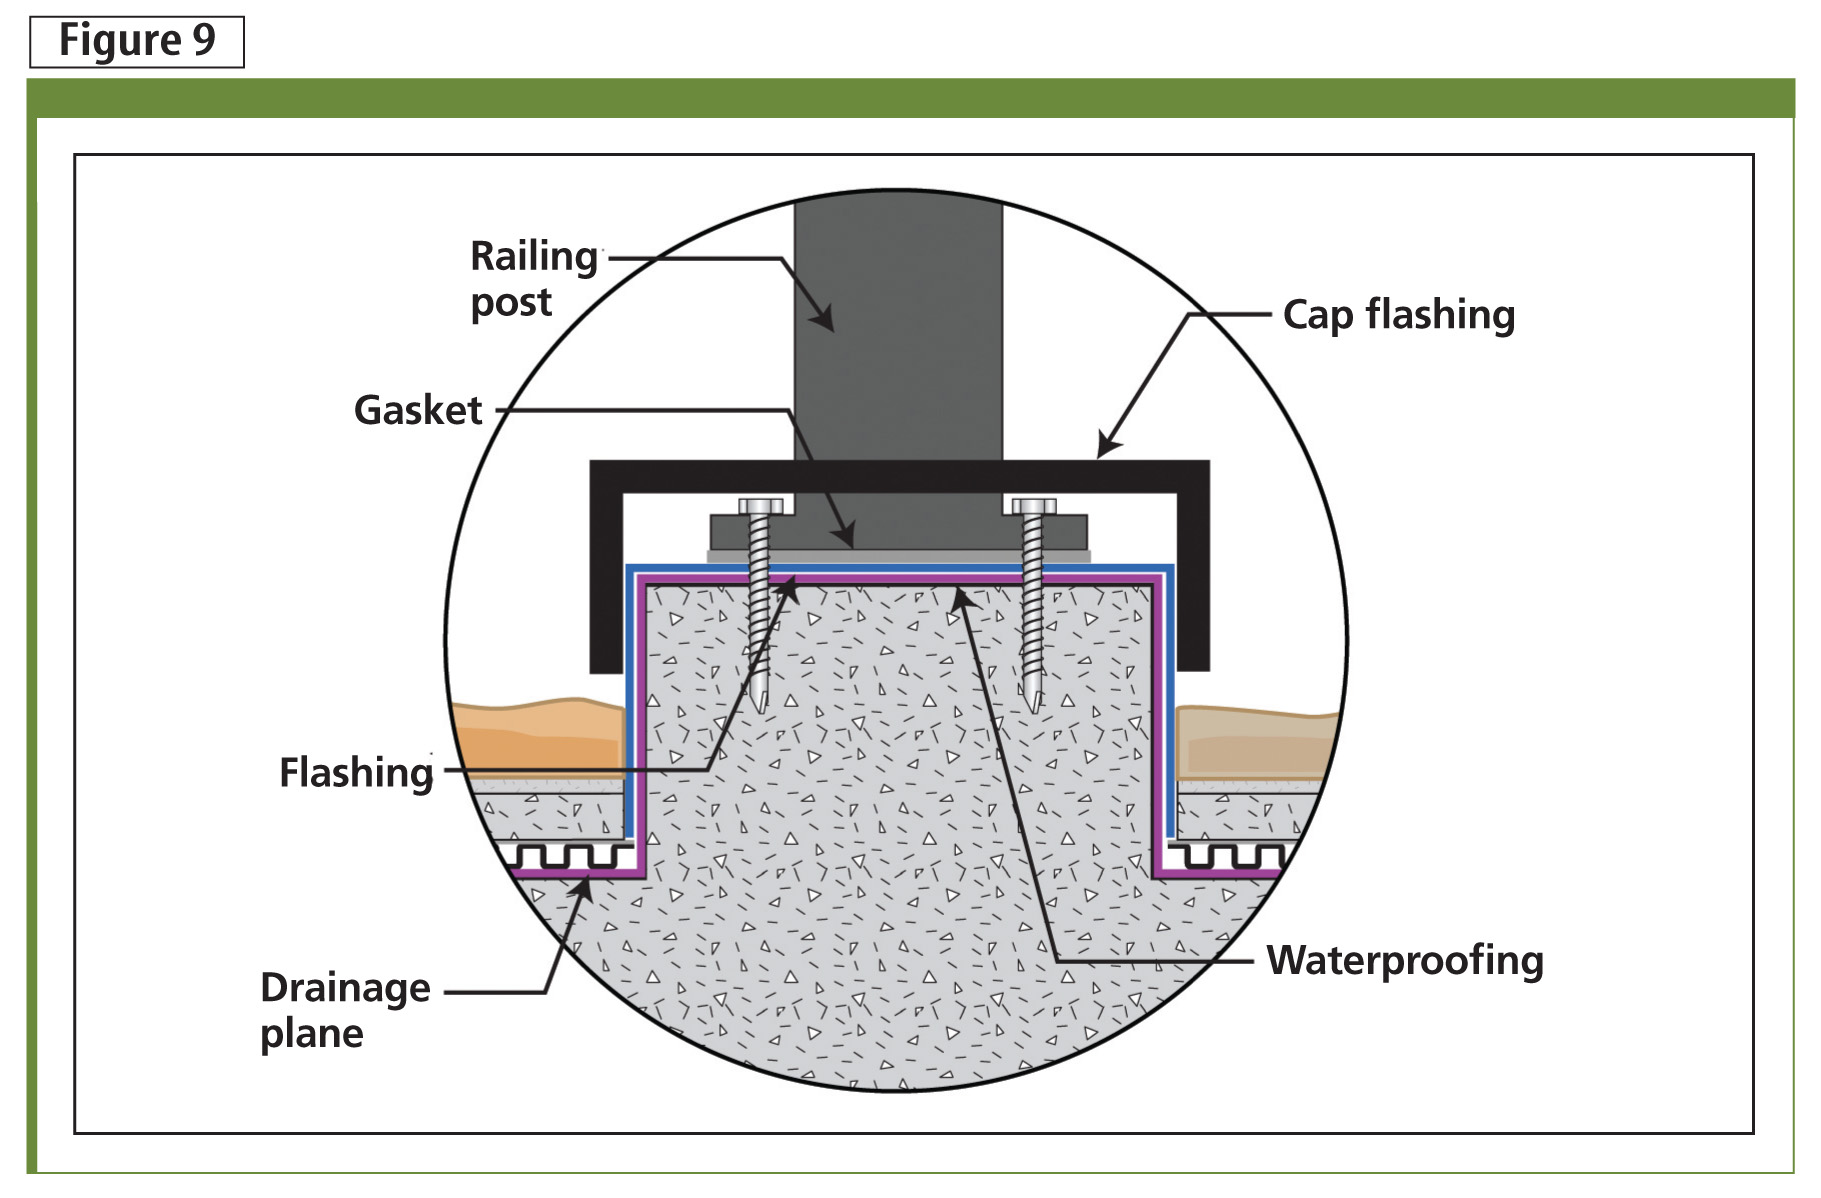 The structural deck design should have had pedestal curbs built in and up past the top surface of the stone overlayment; further, these components should have been part of the waterproofi ng.